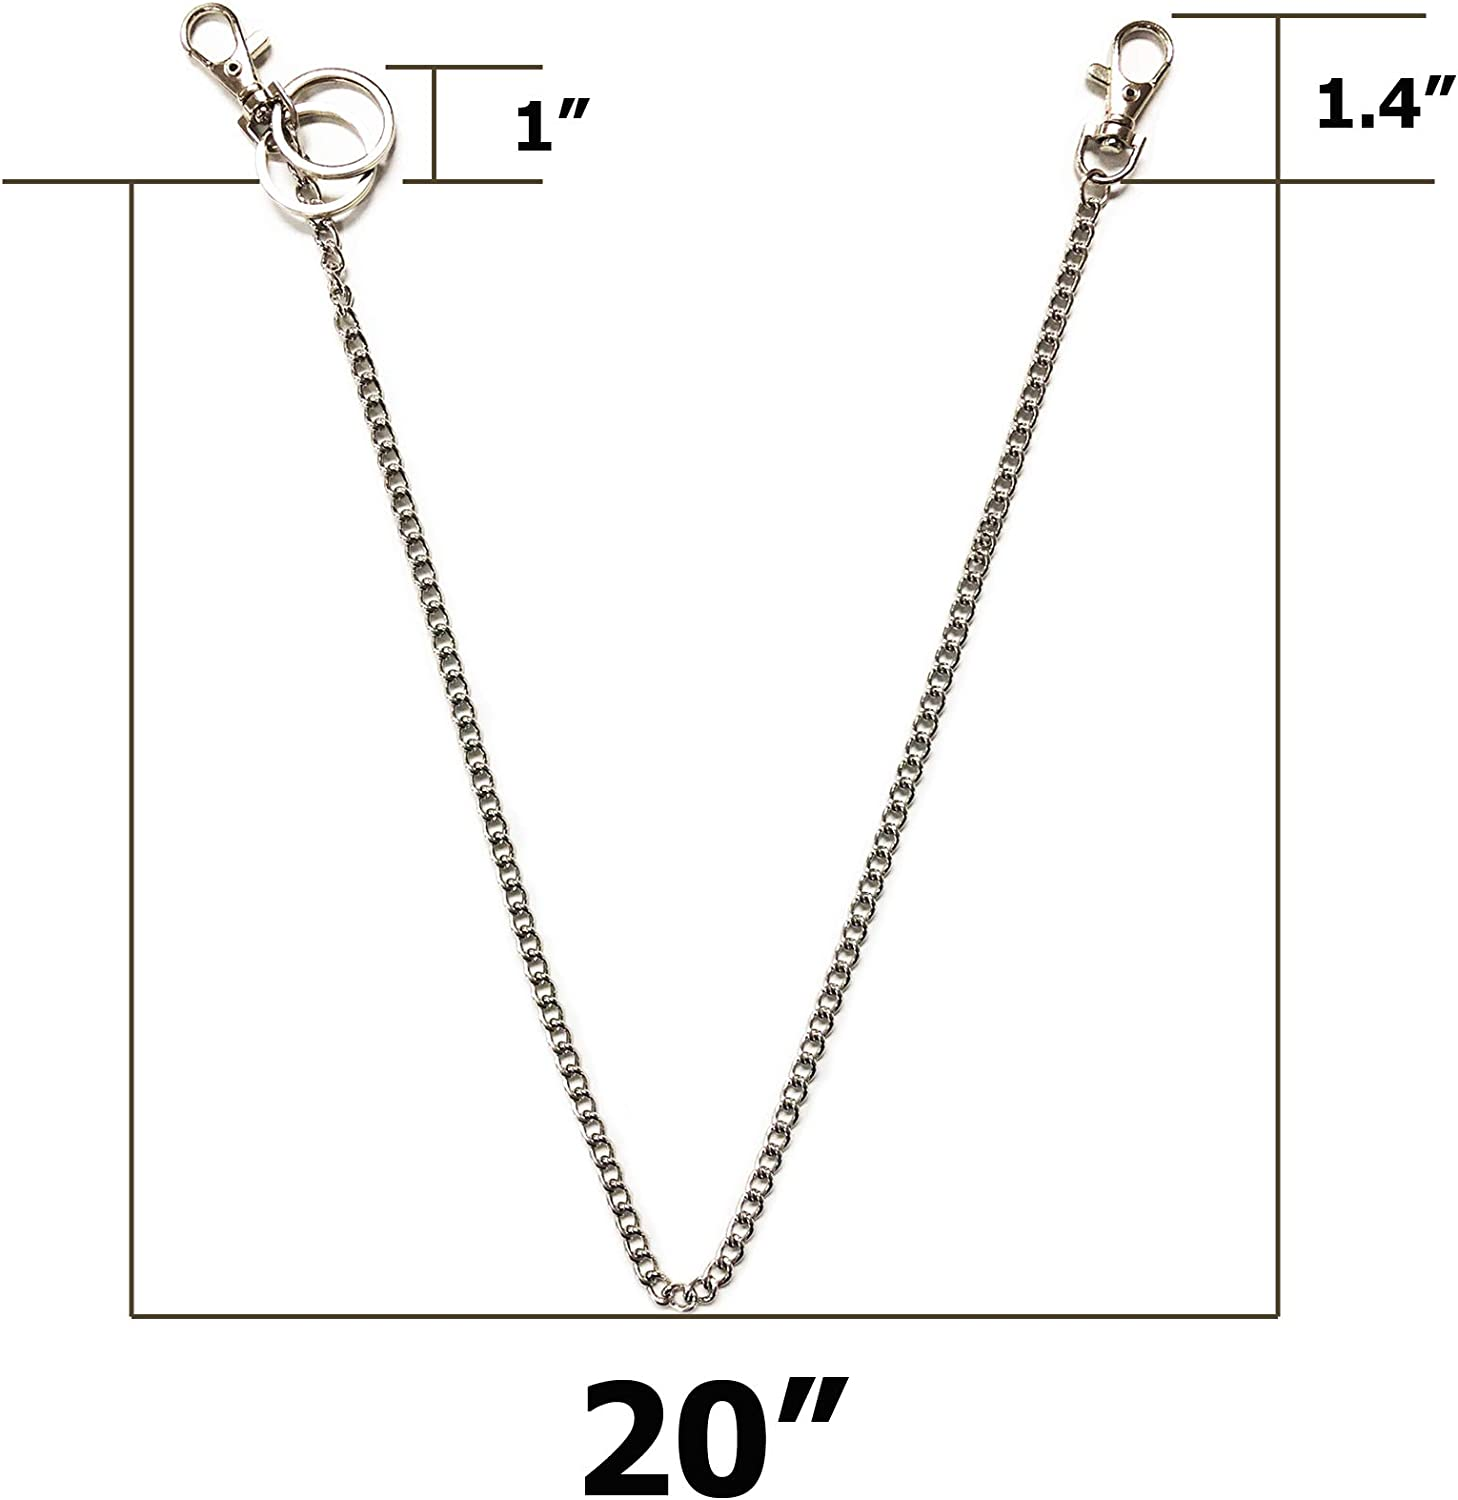 Handbag TSJ 20 Wallet Chain Keychain with Both Ends Lobster Clasps and Extra 2 Rings for Bag Purse Belt Loop Silver Jeans Pants